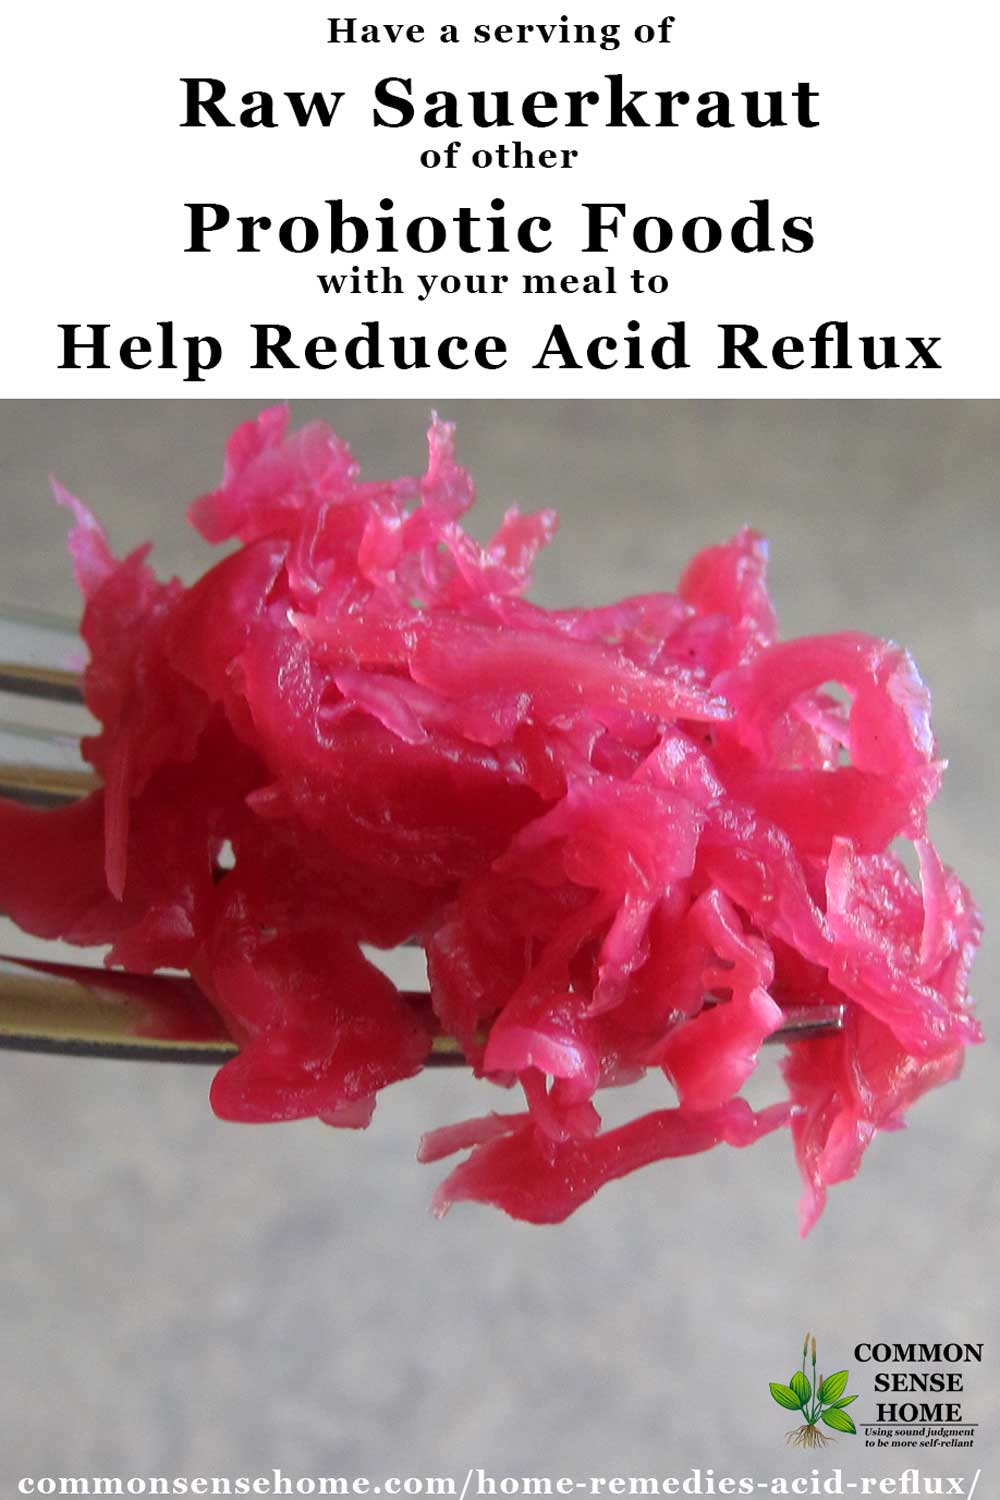 Spoonful of sauerkraut for acid reflux